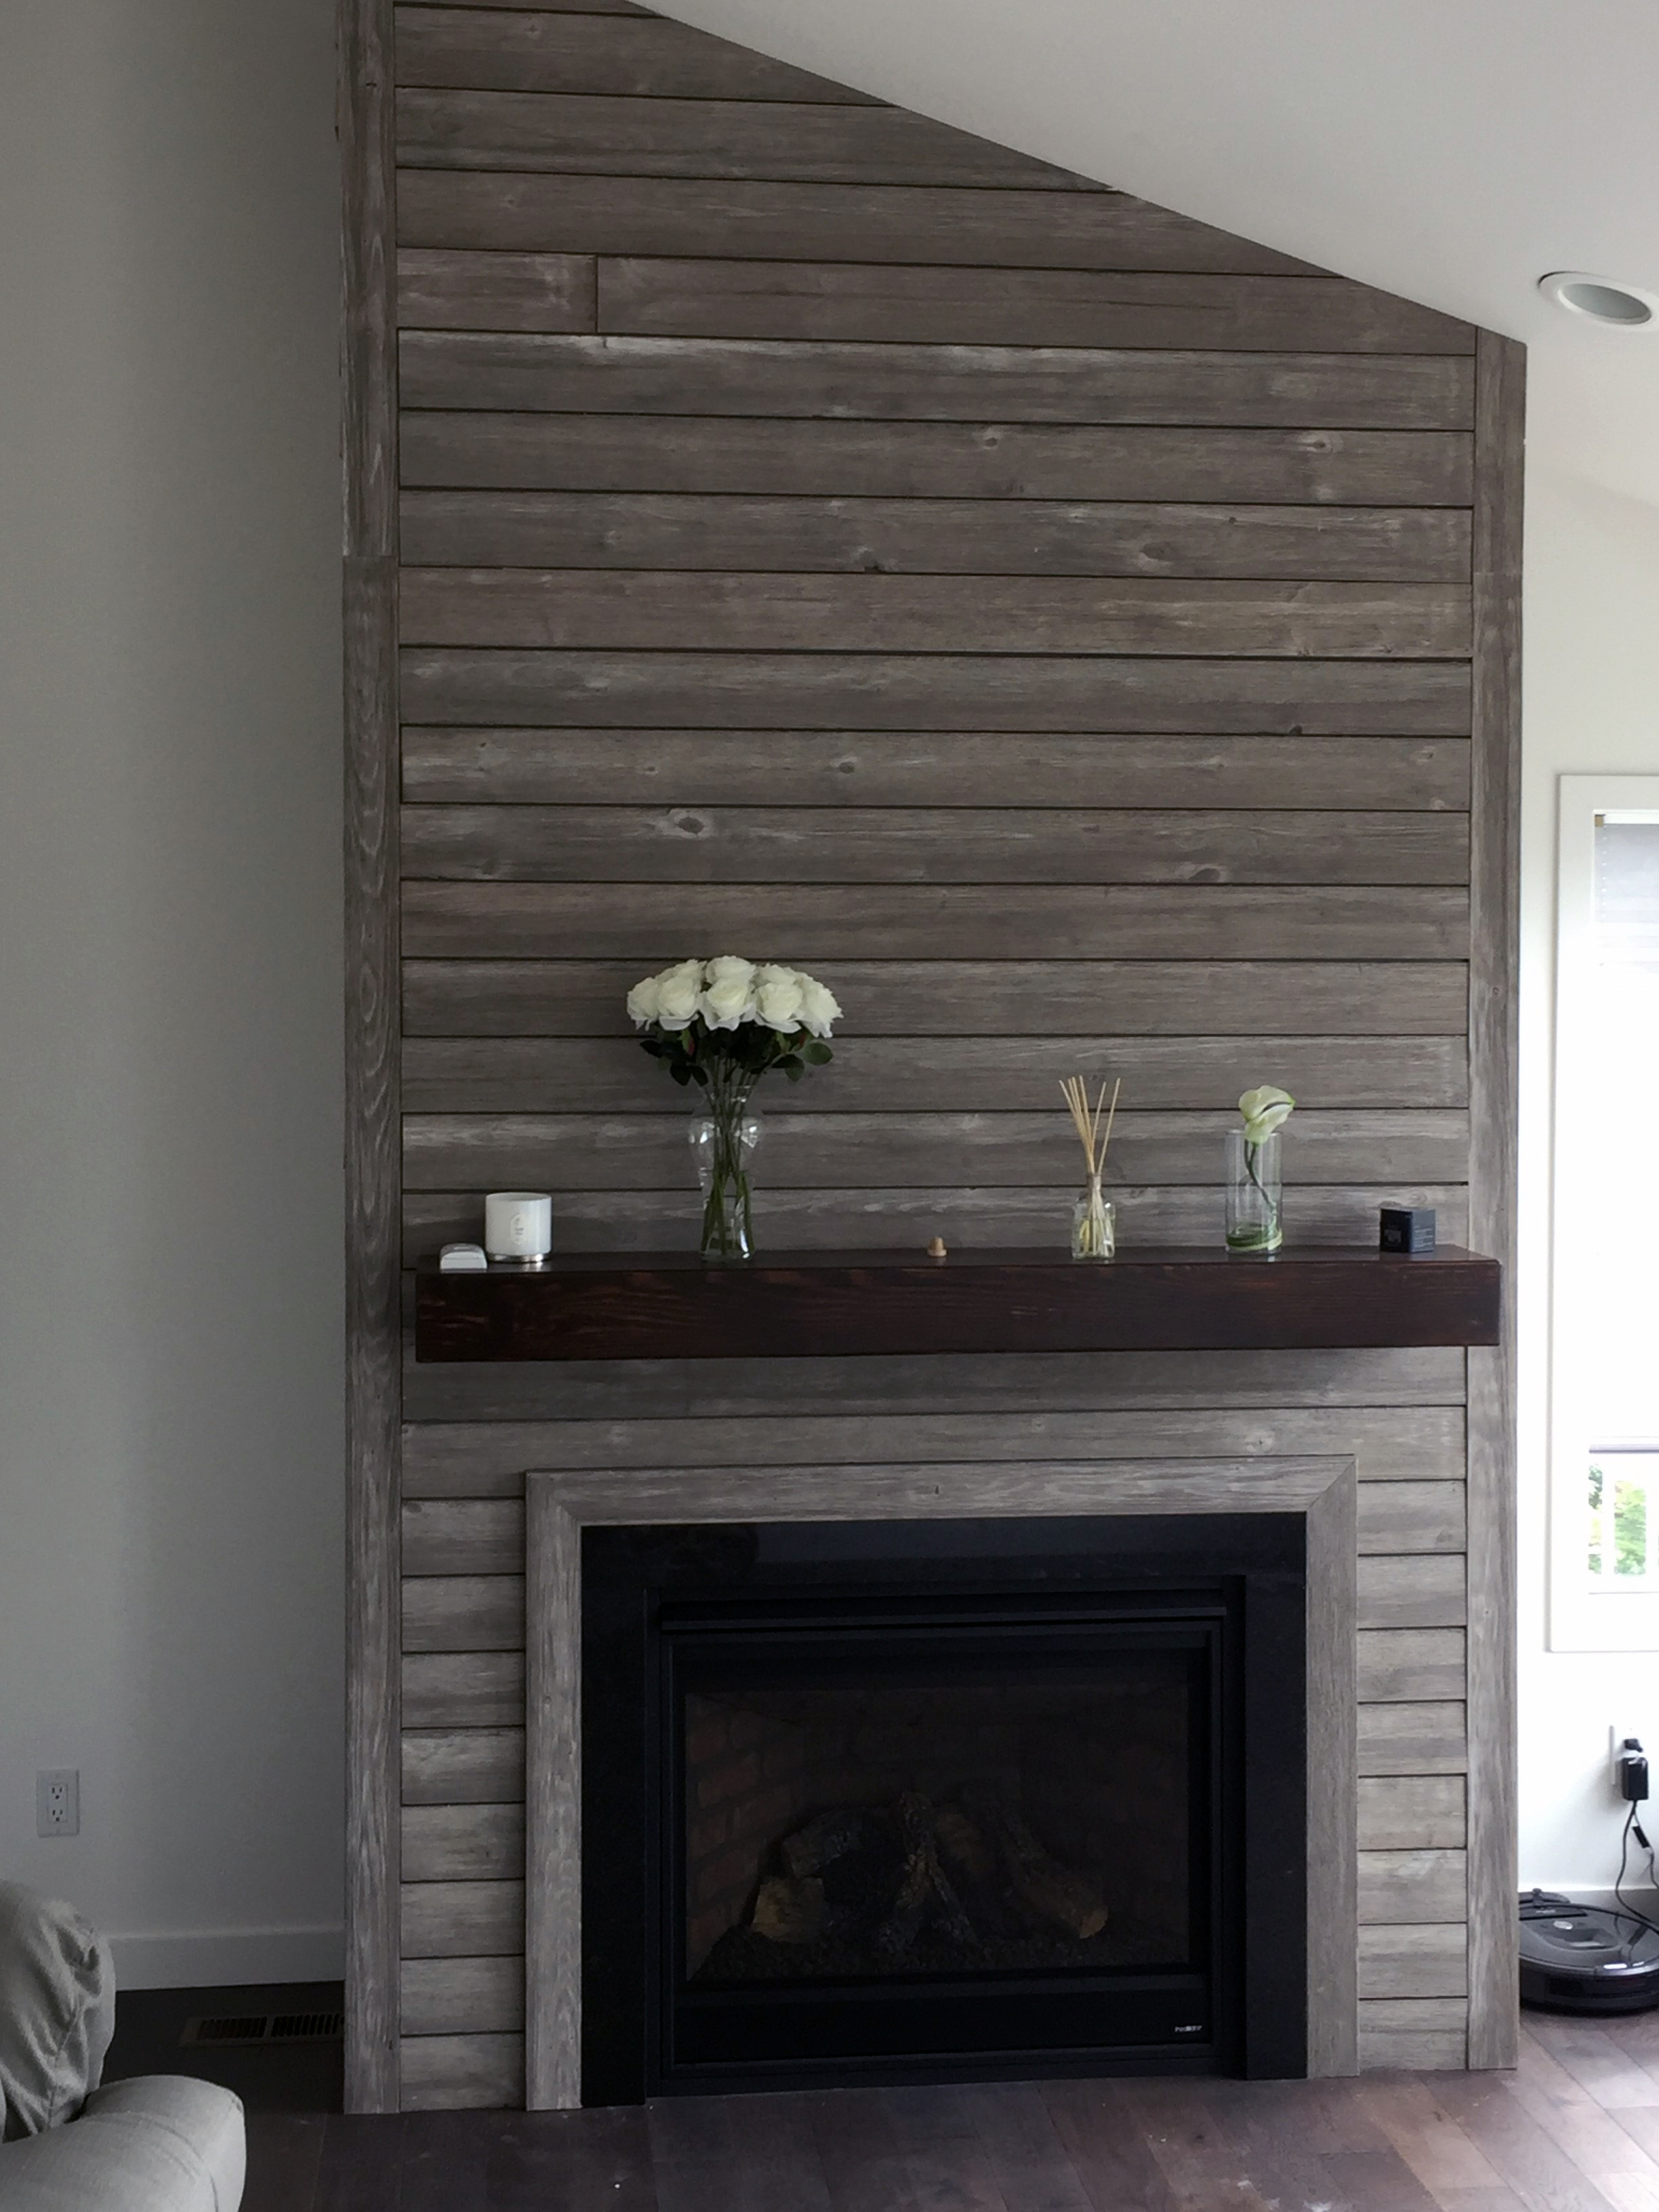 S and K Contracting Seattle Auburn Bennett Fireplace Project [at 70 x 72] edited by Graham Hnedak Brand G Creative 25 OCT 2017.jpg